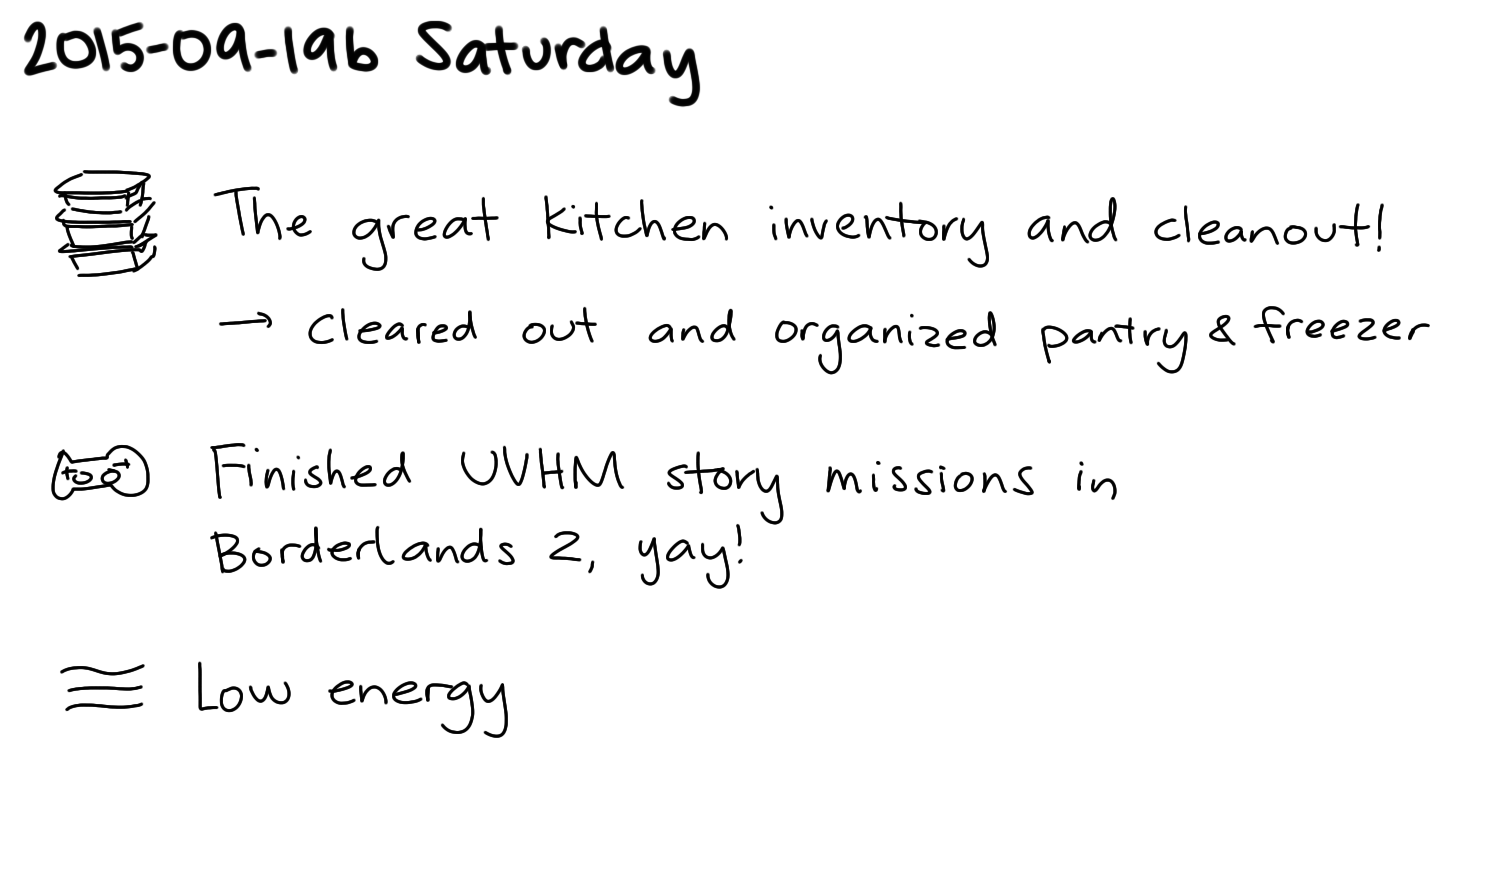 2015-09-19b Saturday -- index card #journal.png